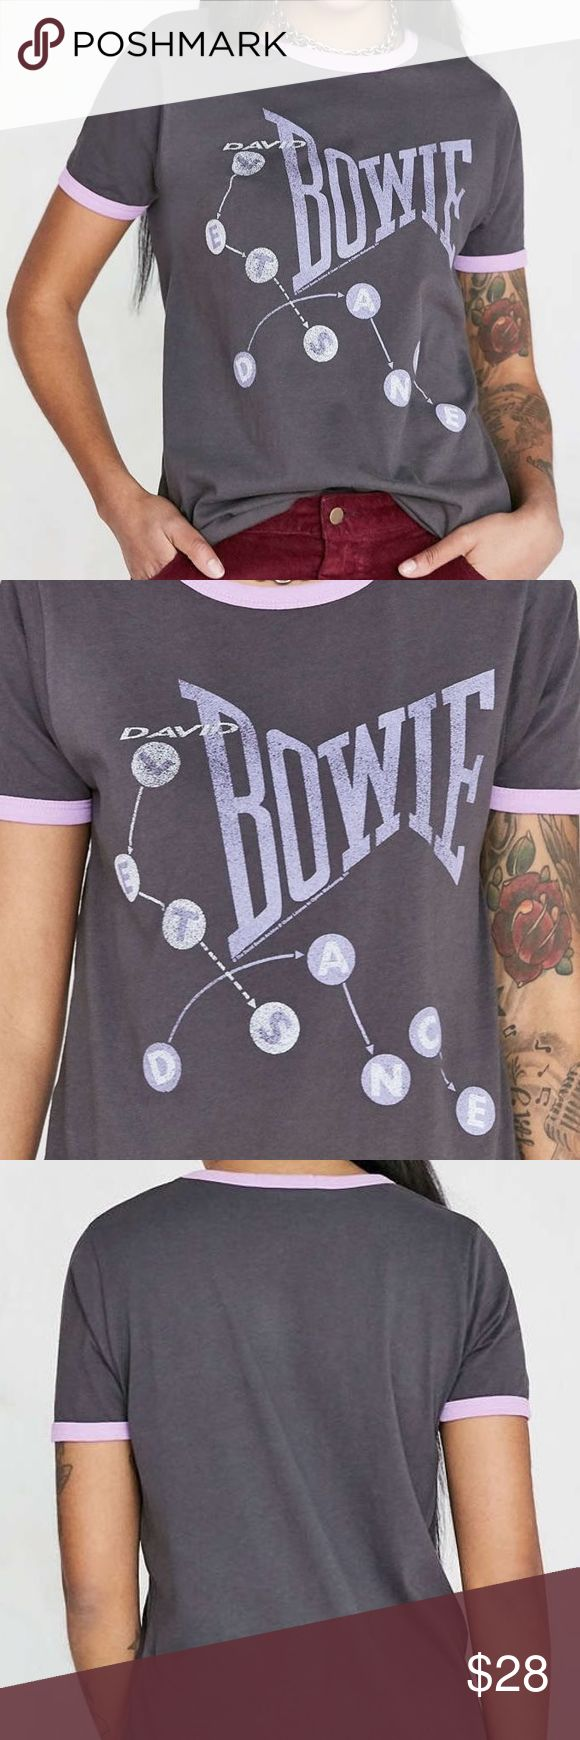 Junk Food T Shirt Classic Rock - David Bowie XS S Style: David Bowie classic rock ringer tee   Color: Vintage Washed Black  SOLD OUT EVERYWHERE! Junk Food Clothing Tops Tees - Short Sleeve